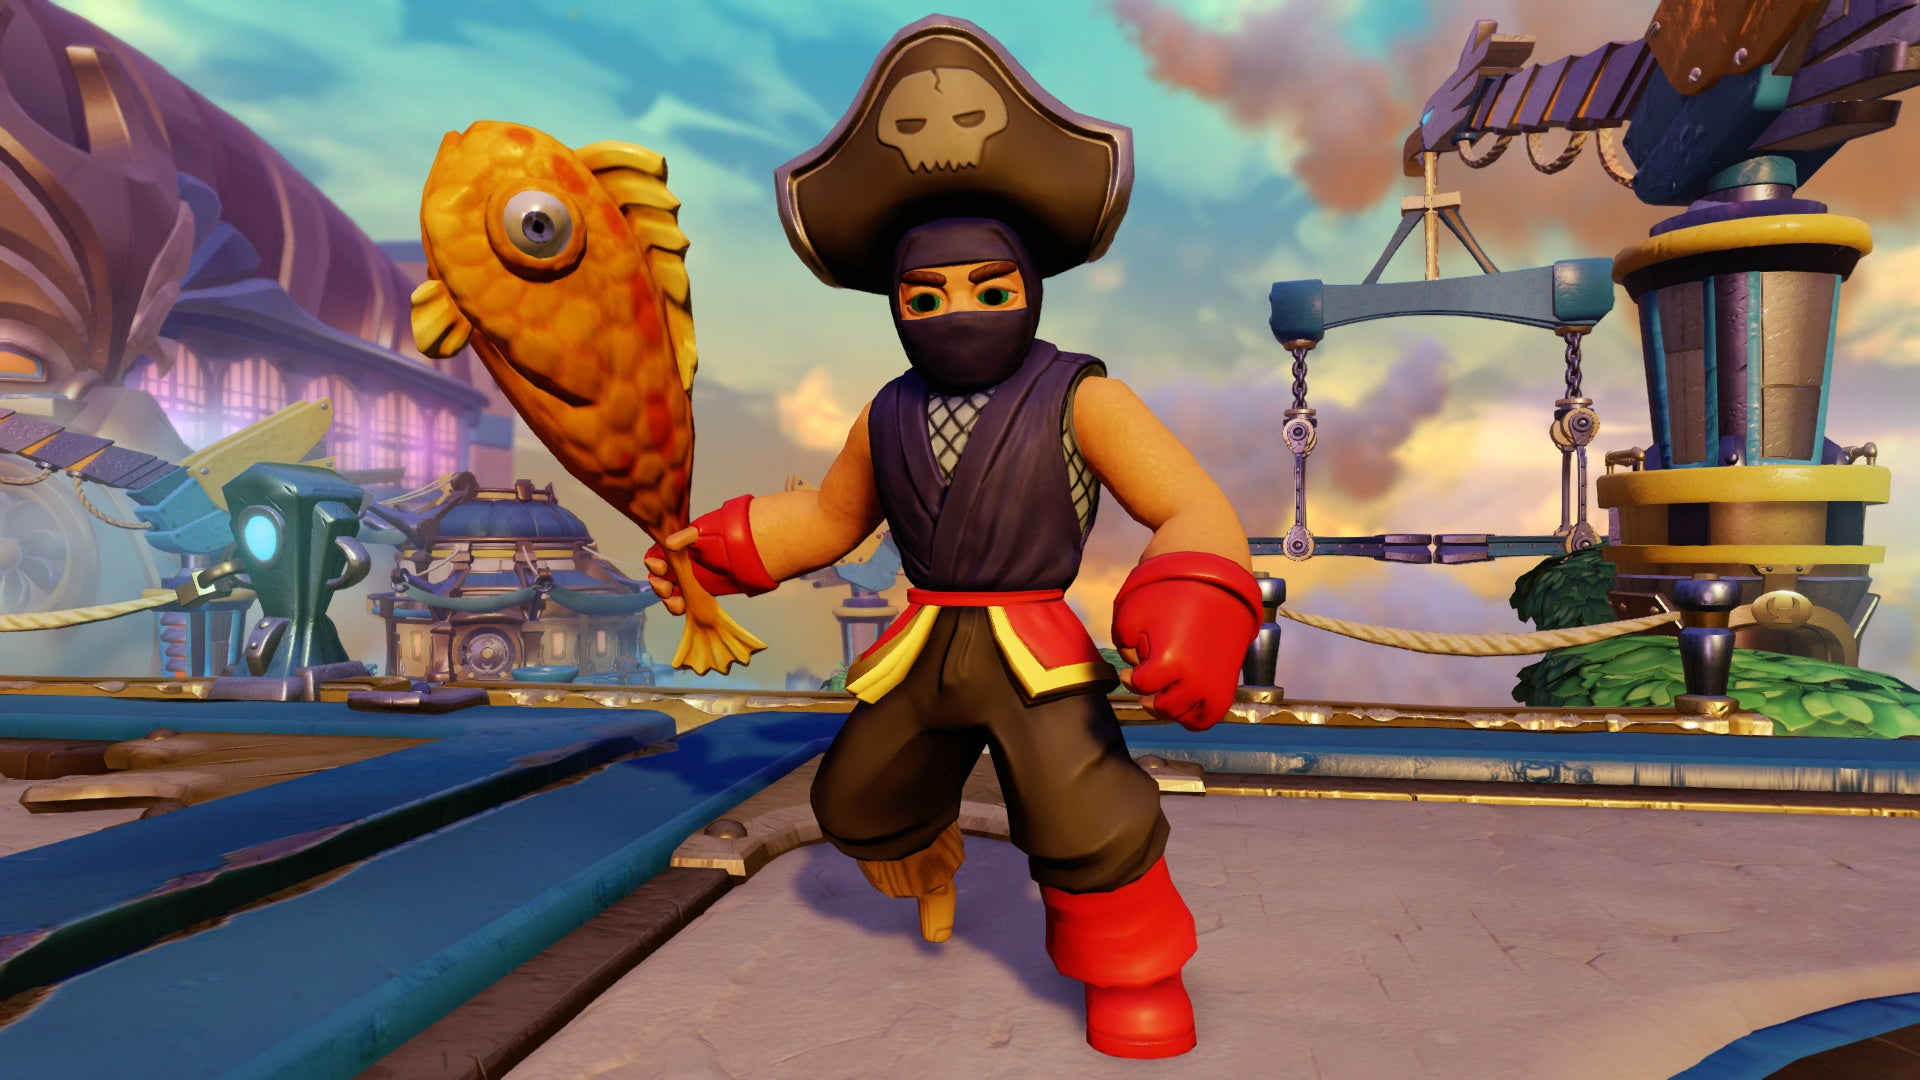 Skylanders Imaginators Proves It Can Do Plunder Fist